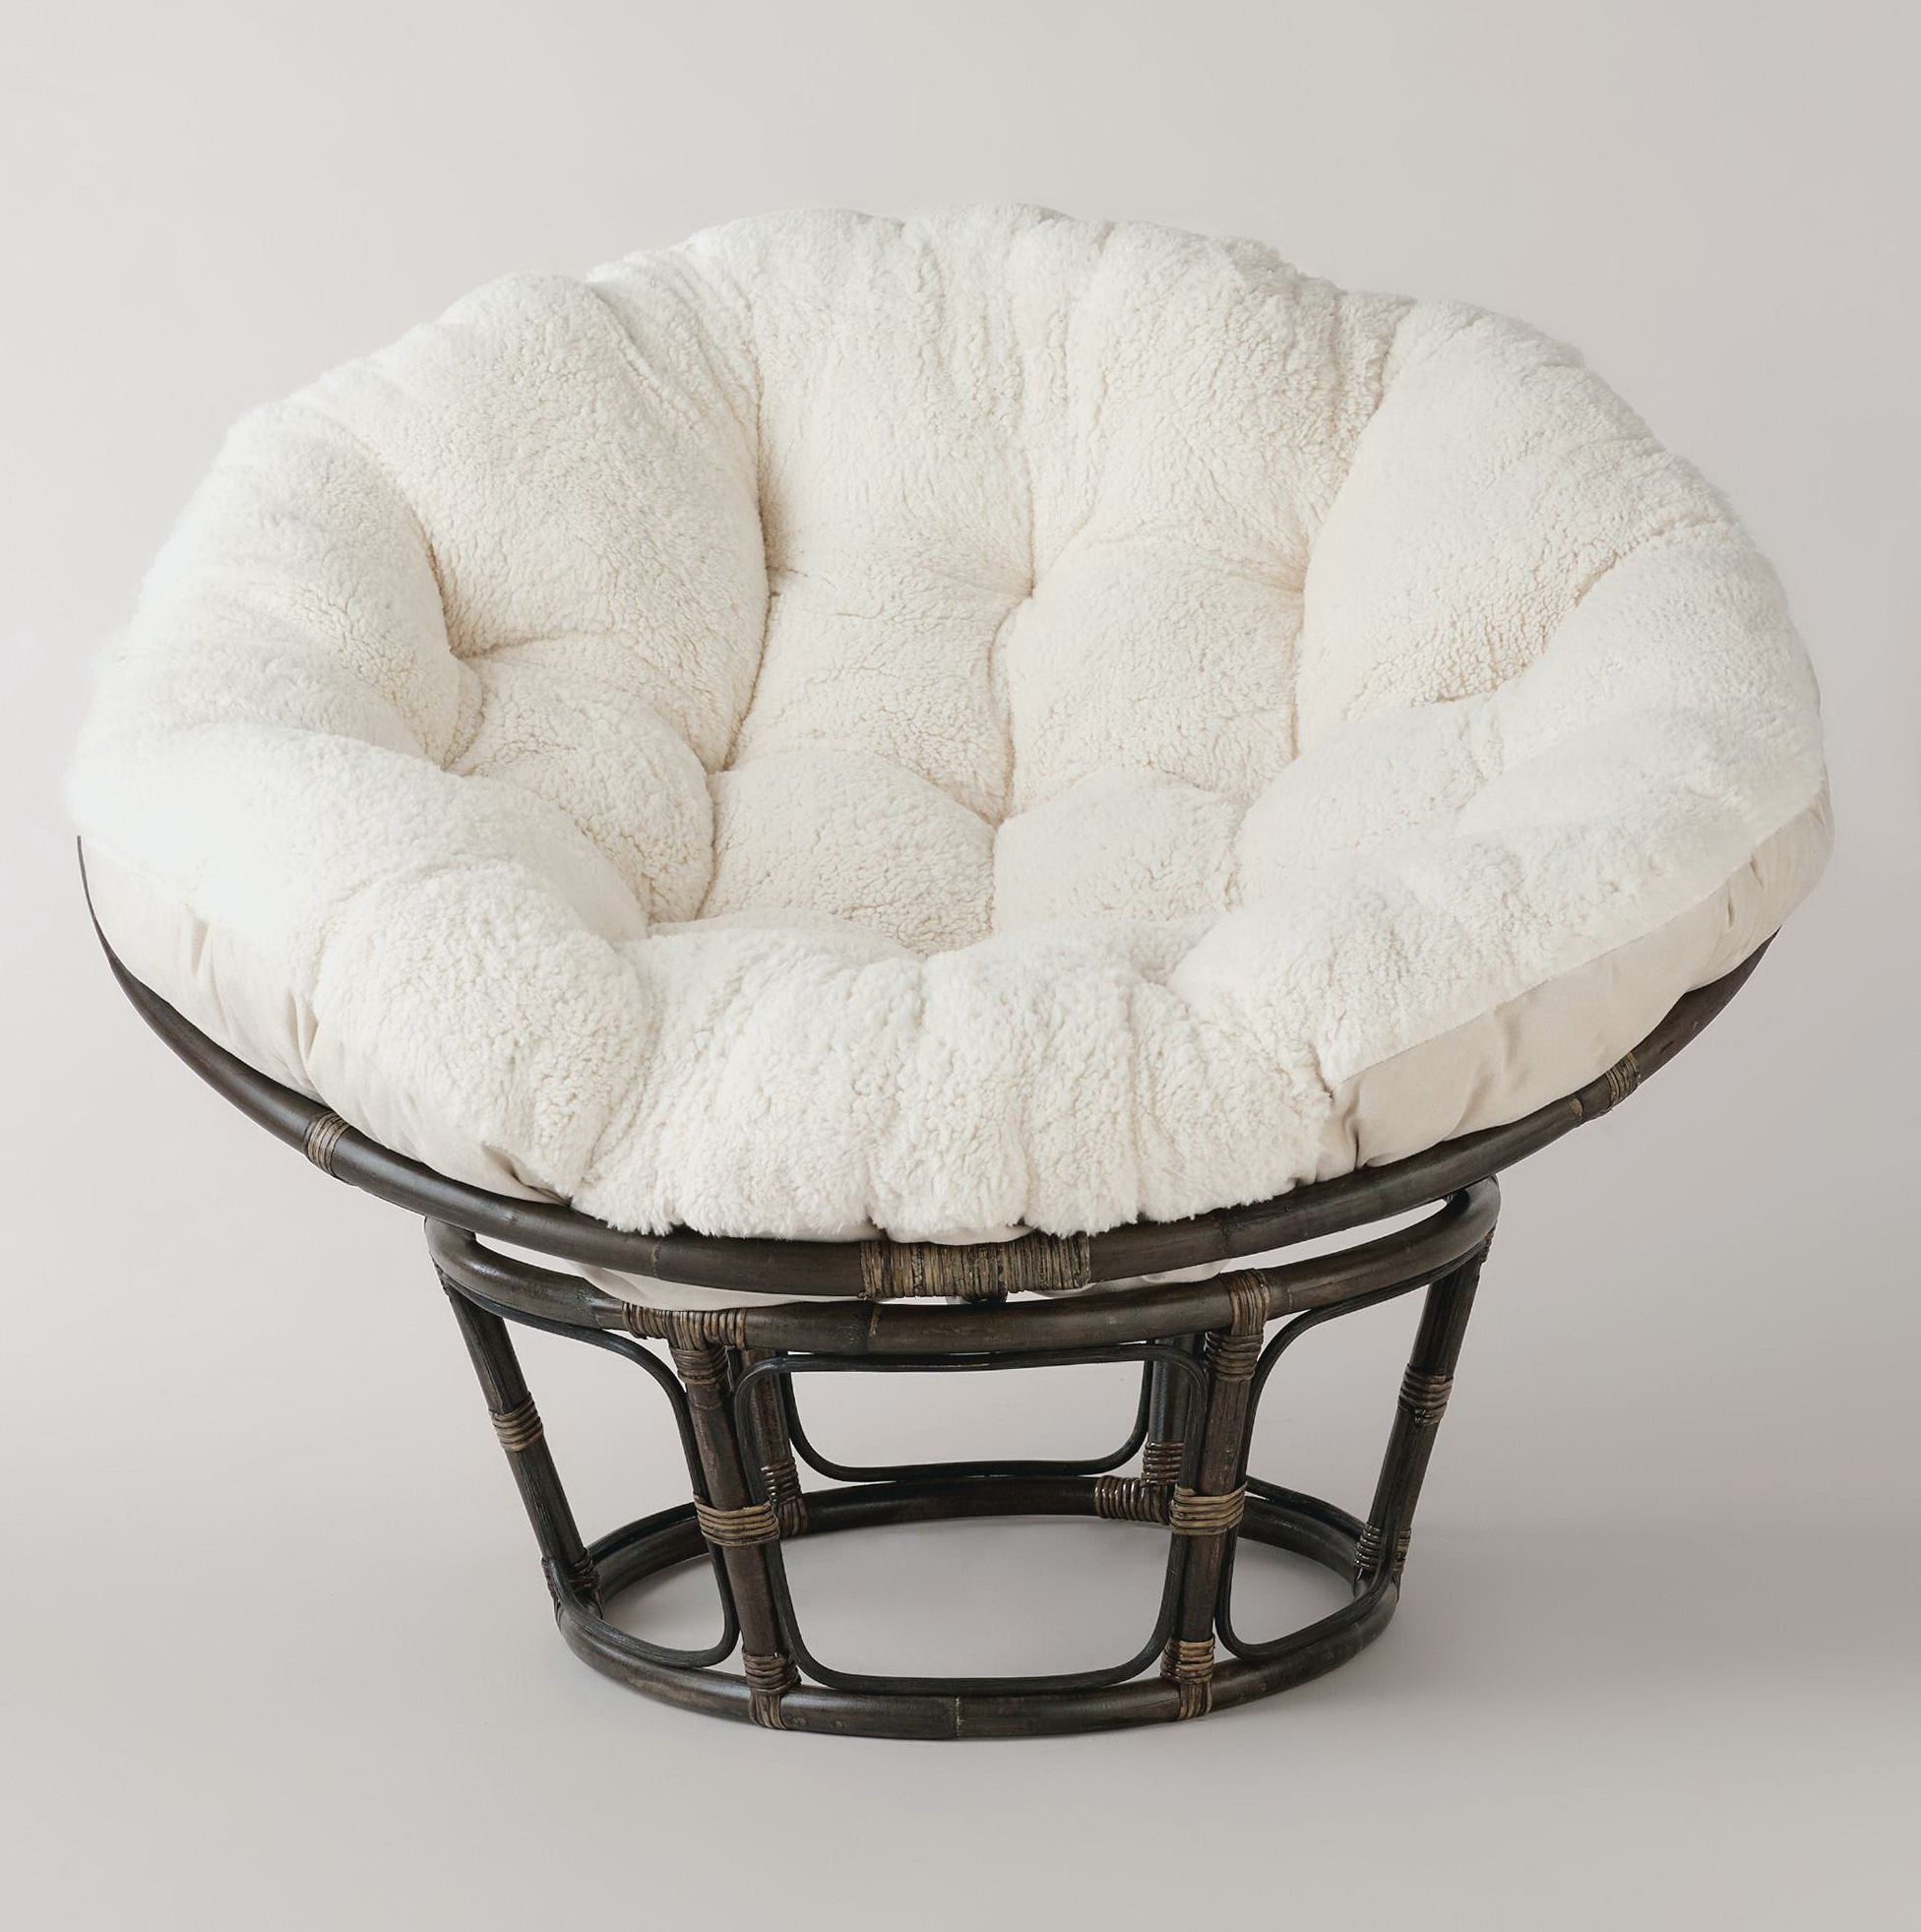 ikea chair cushions covers kerry round home design ideas